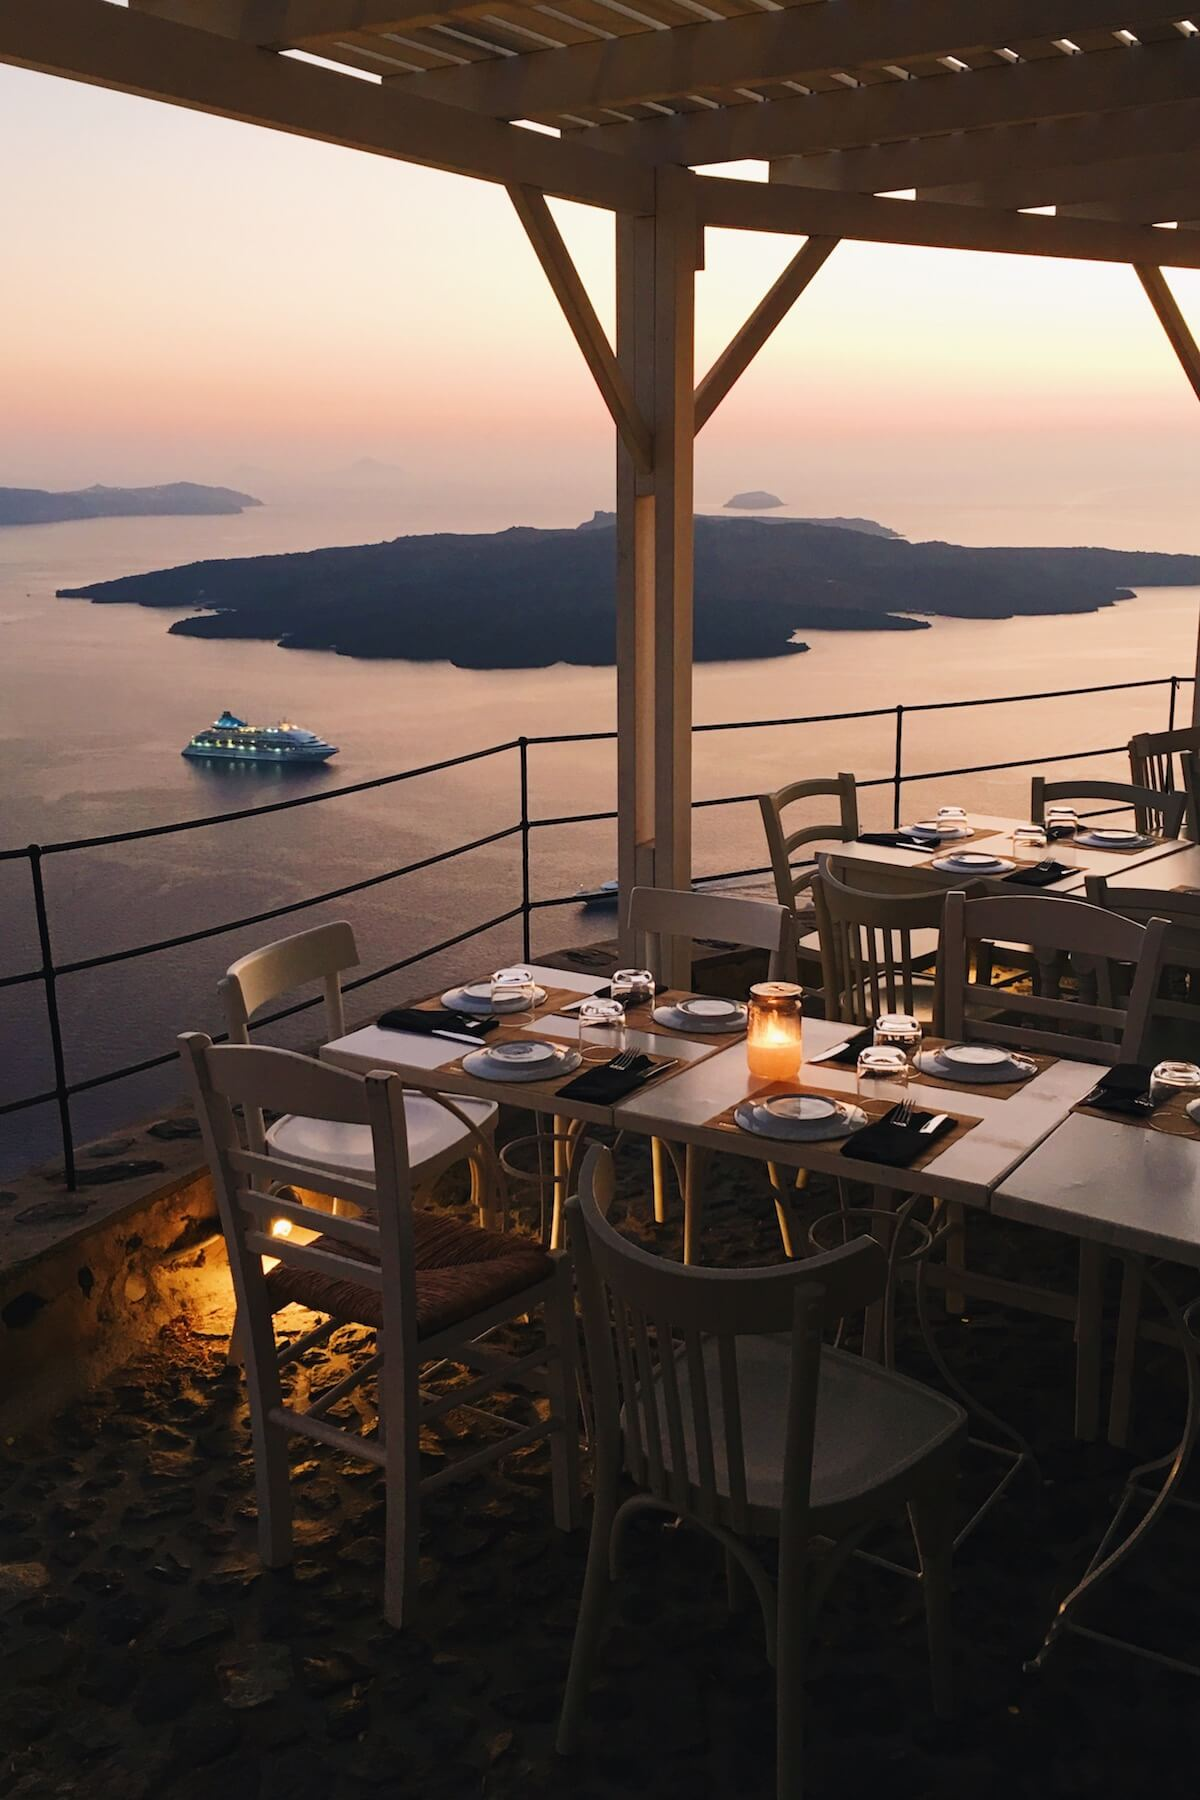 View from a patio restaurant in Santorini, Greece.